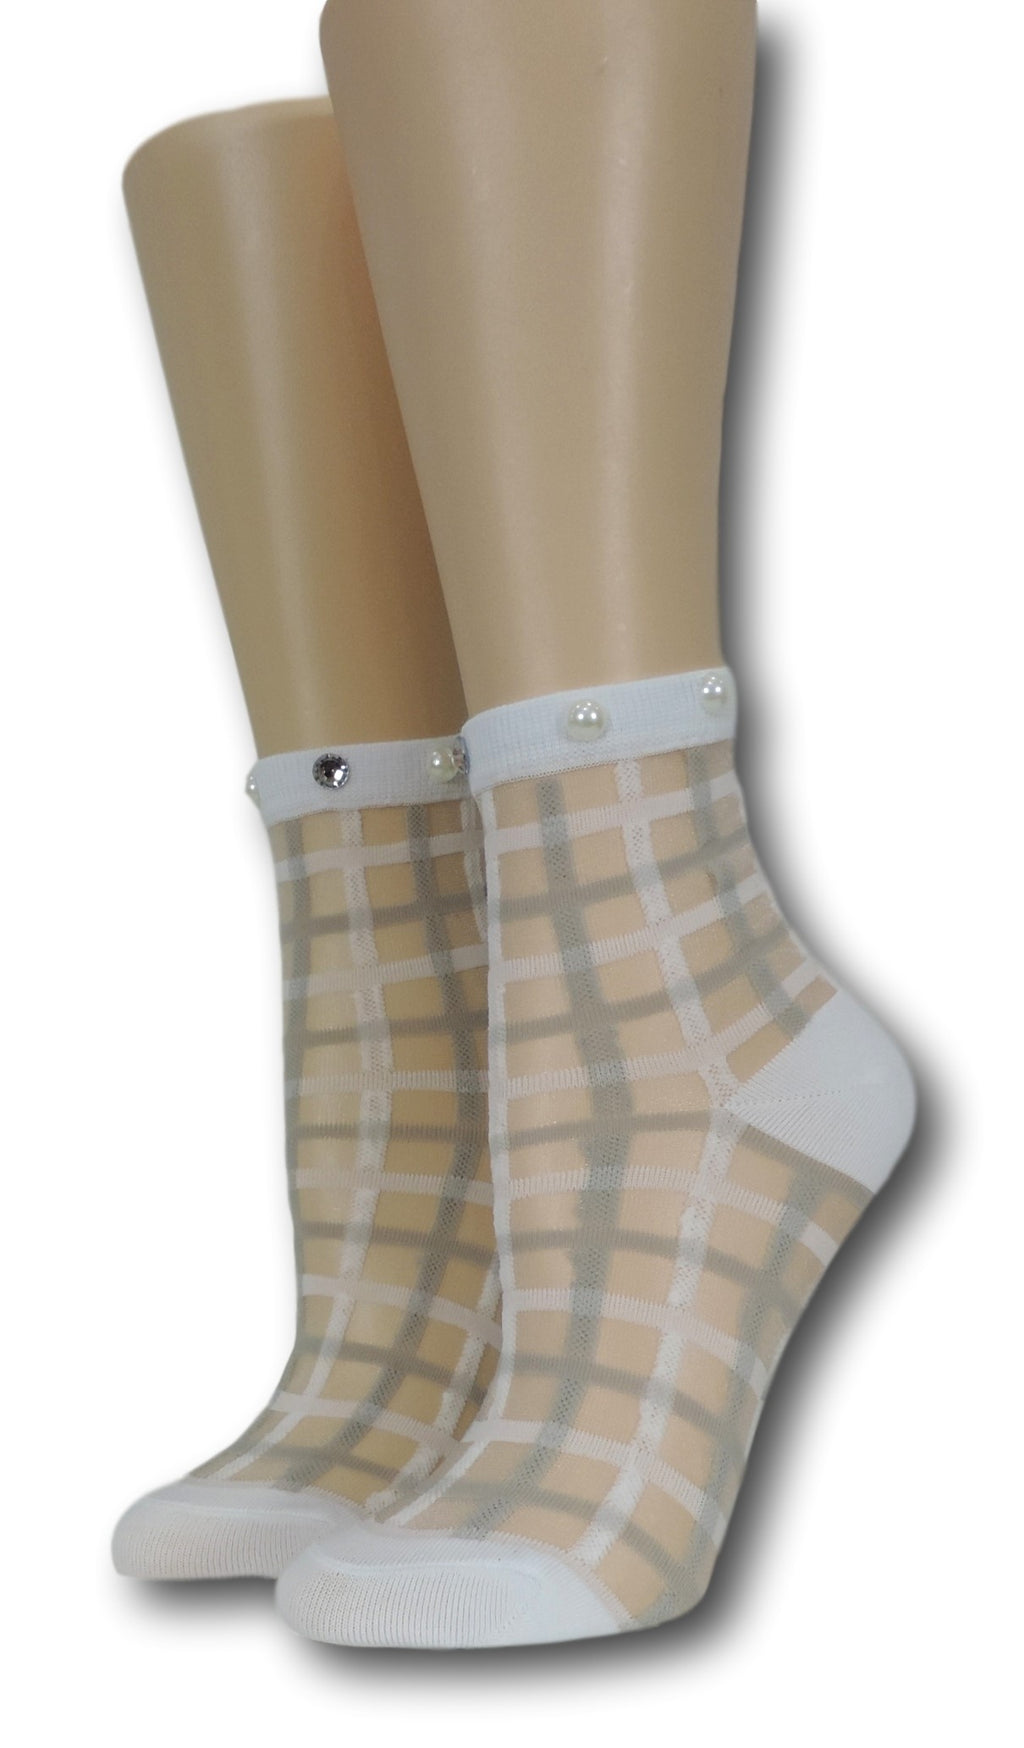 White Vintage Sheer Socks with beads